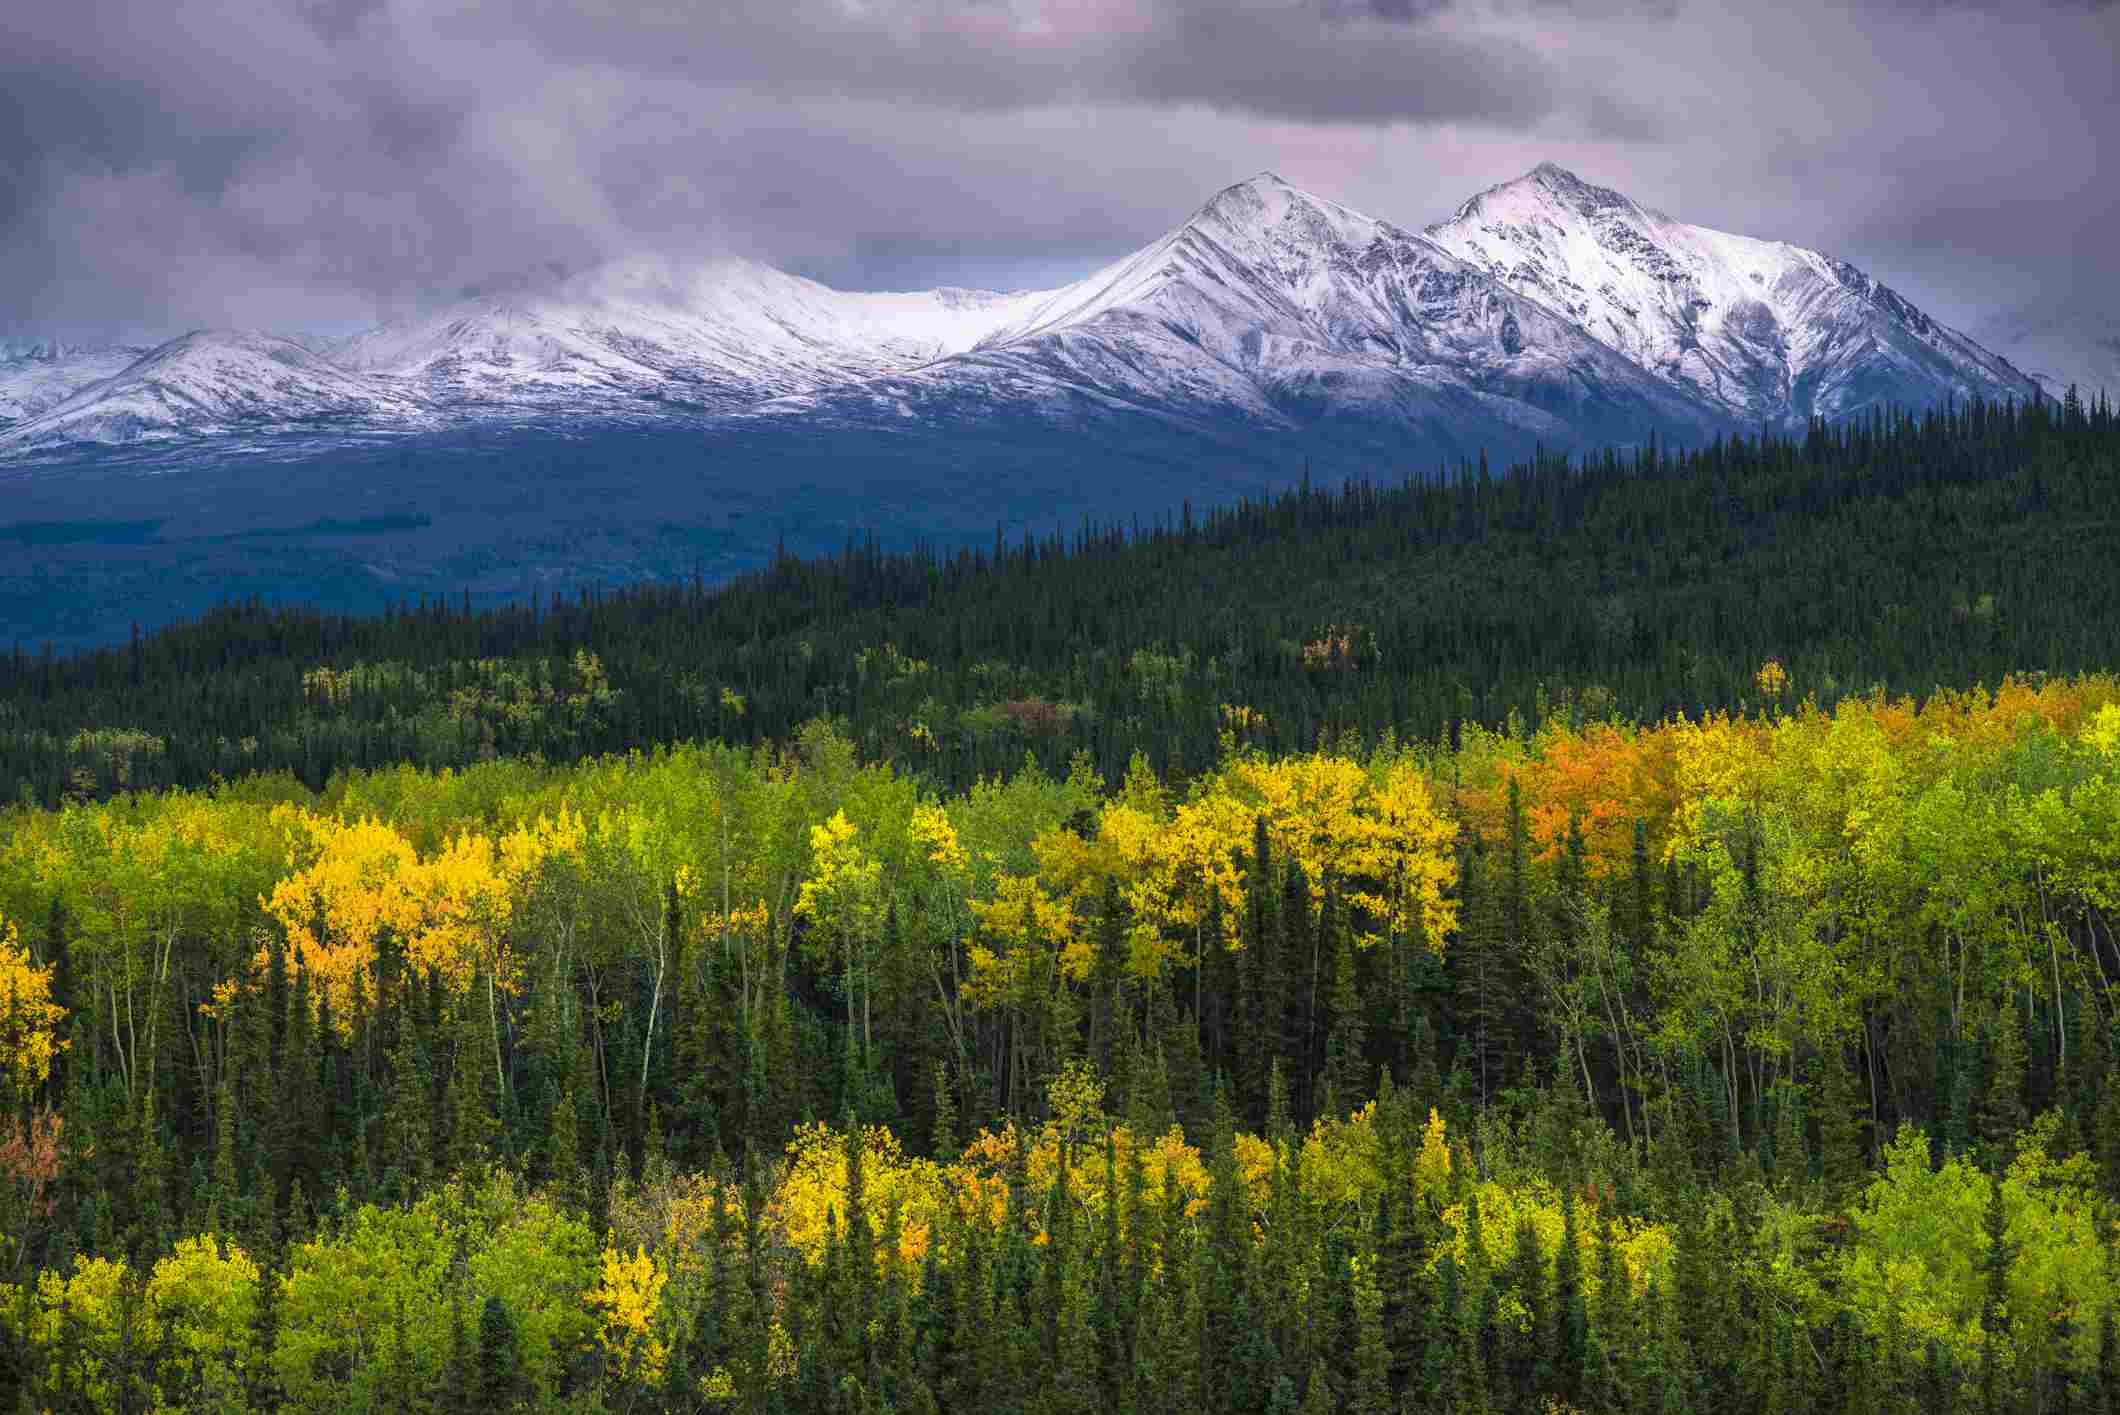 Top national parks for fall foliage